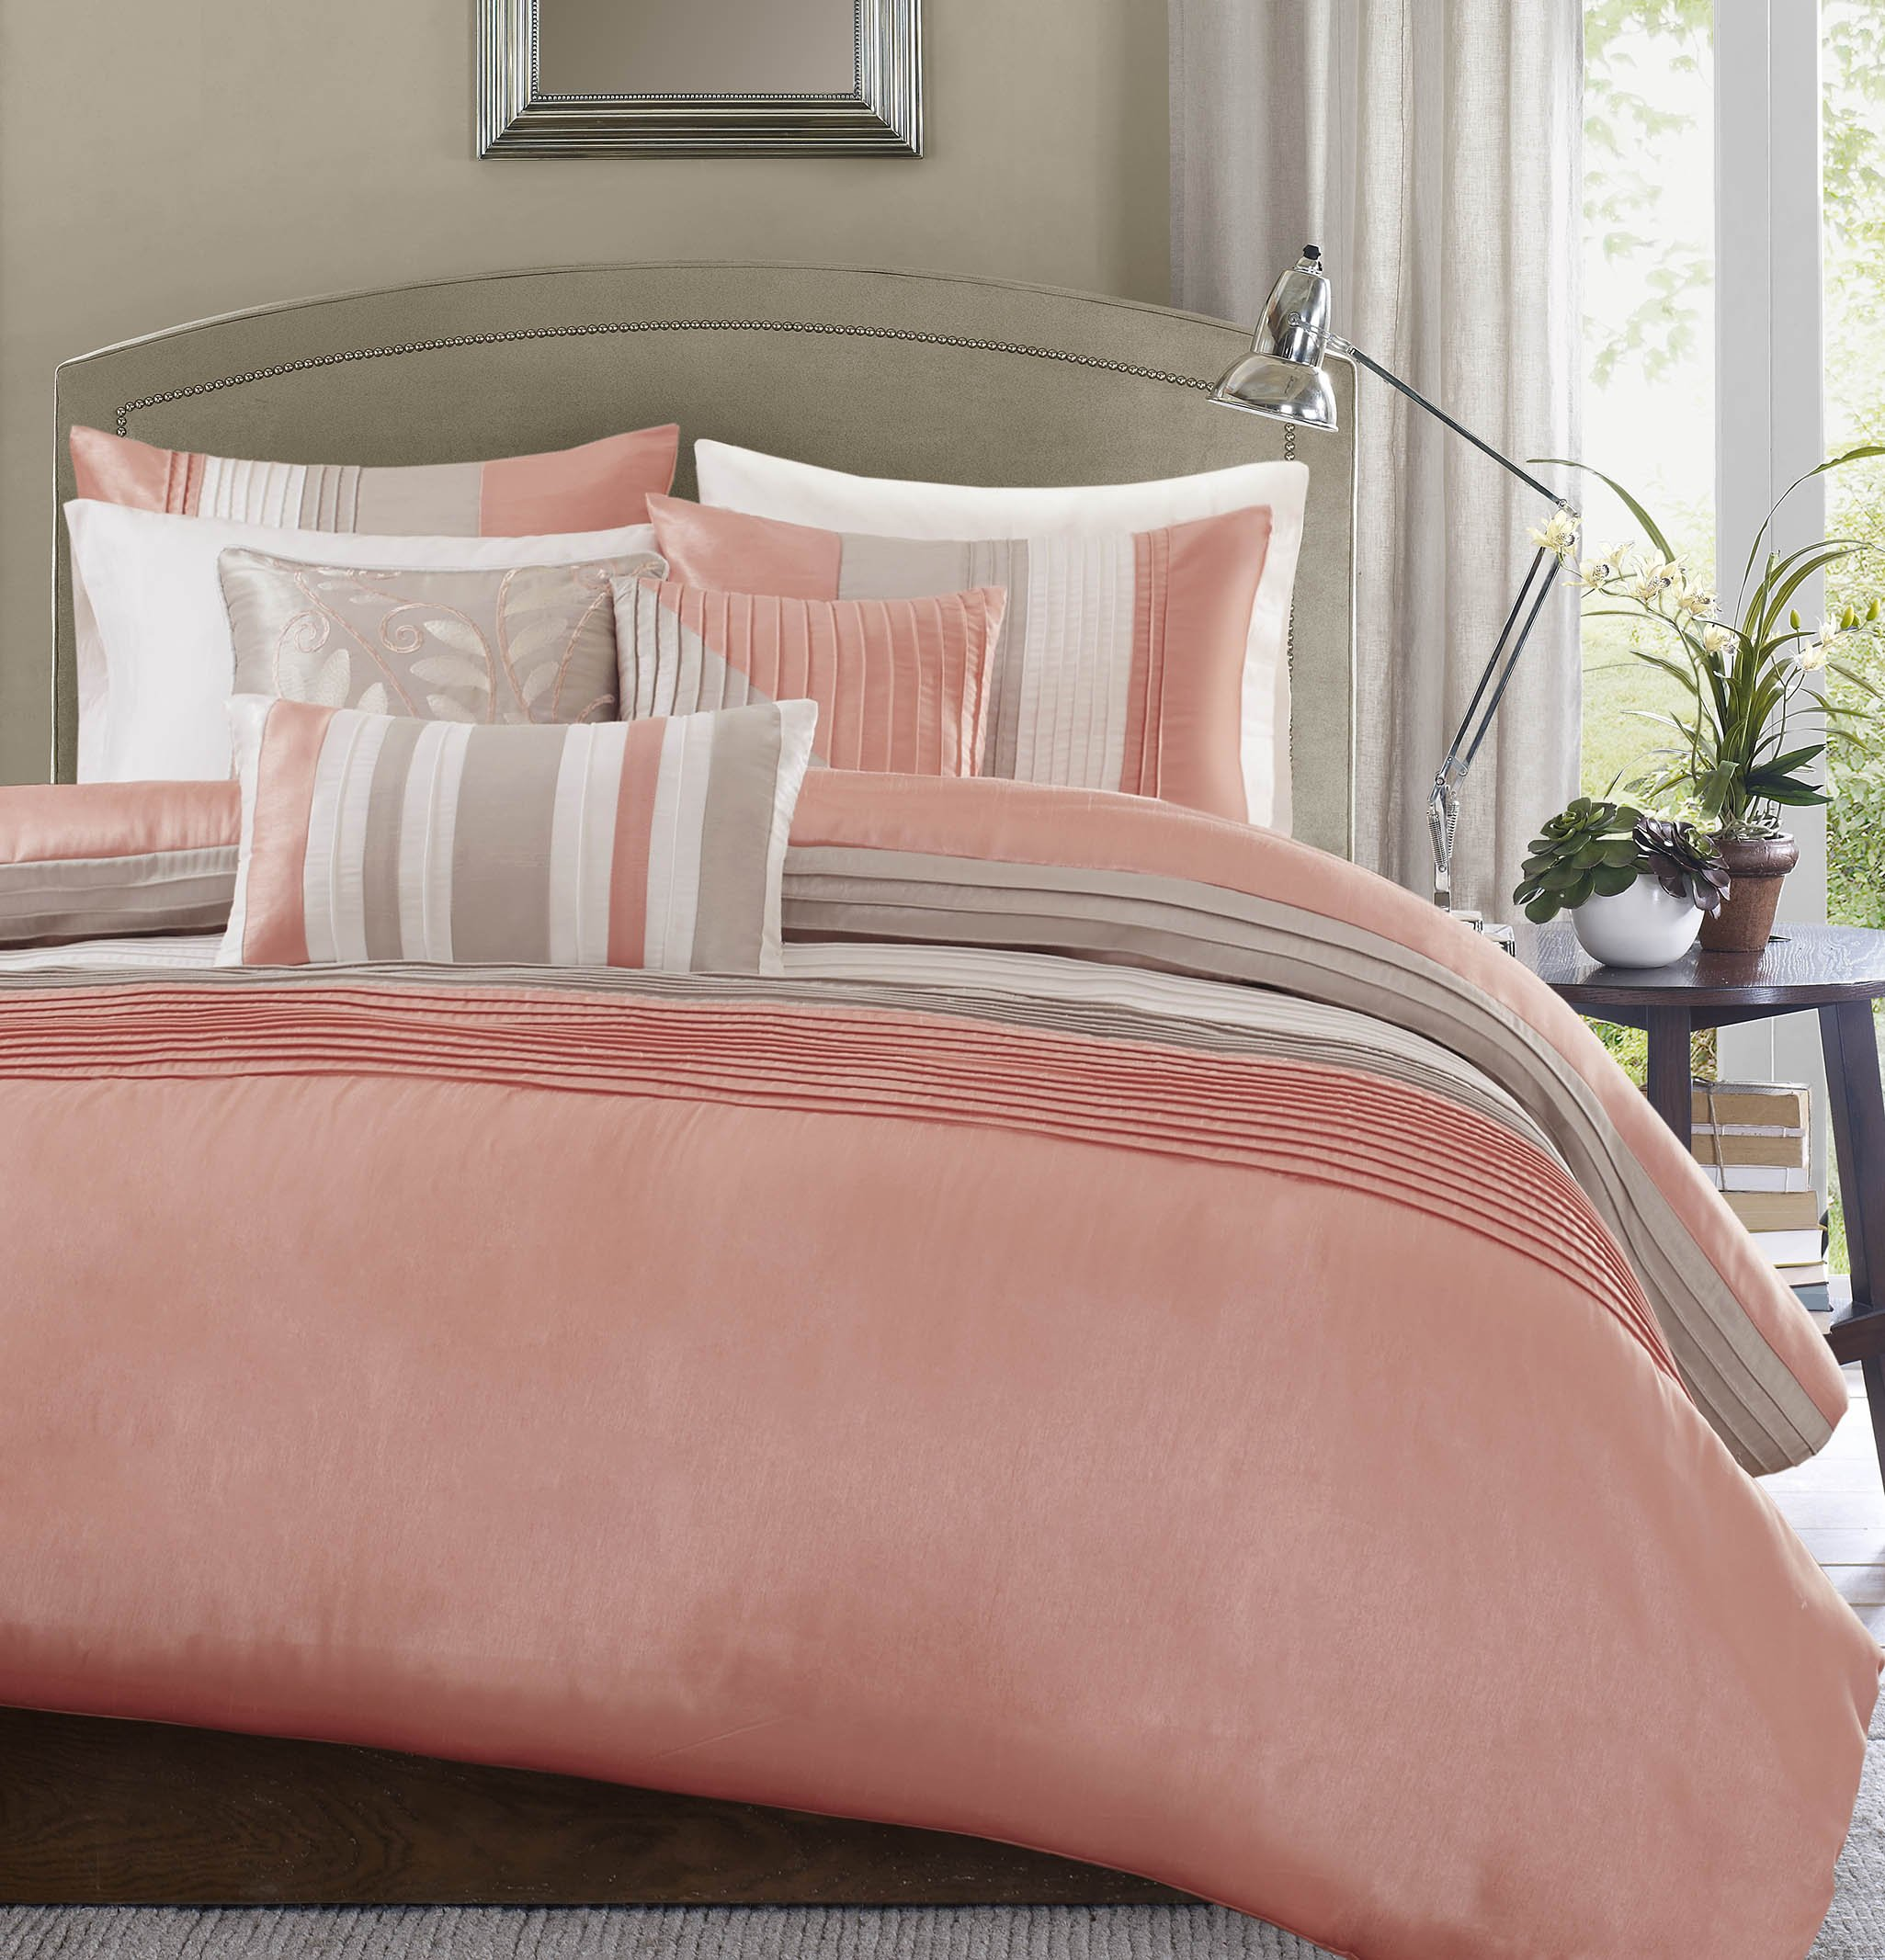 Madison Park Amherst Duvet Cover Queen Size - Coral, Khaki, Pieced Stripes Duvet Cover Set – 6 Piece – Ultra Soft Microfiber Light Weight Bed Comforter Covers